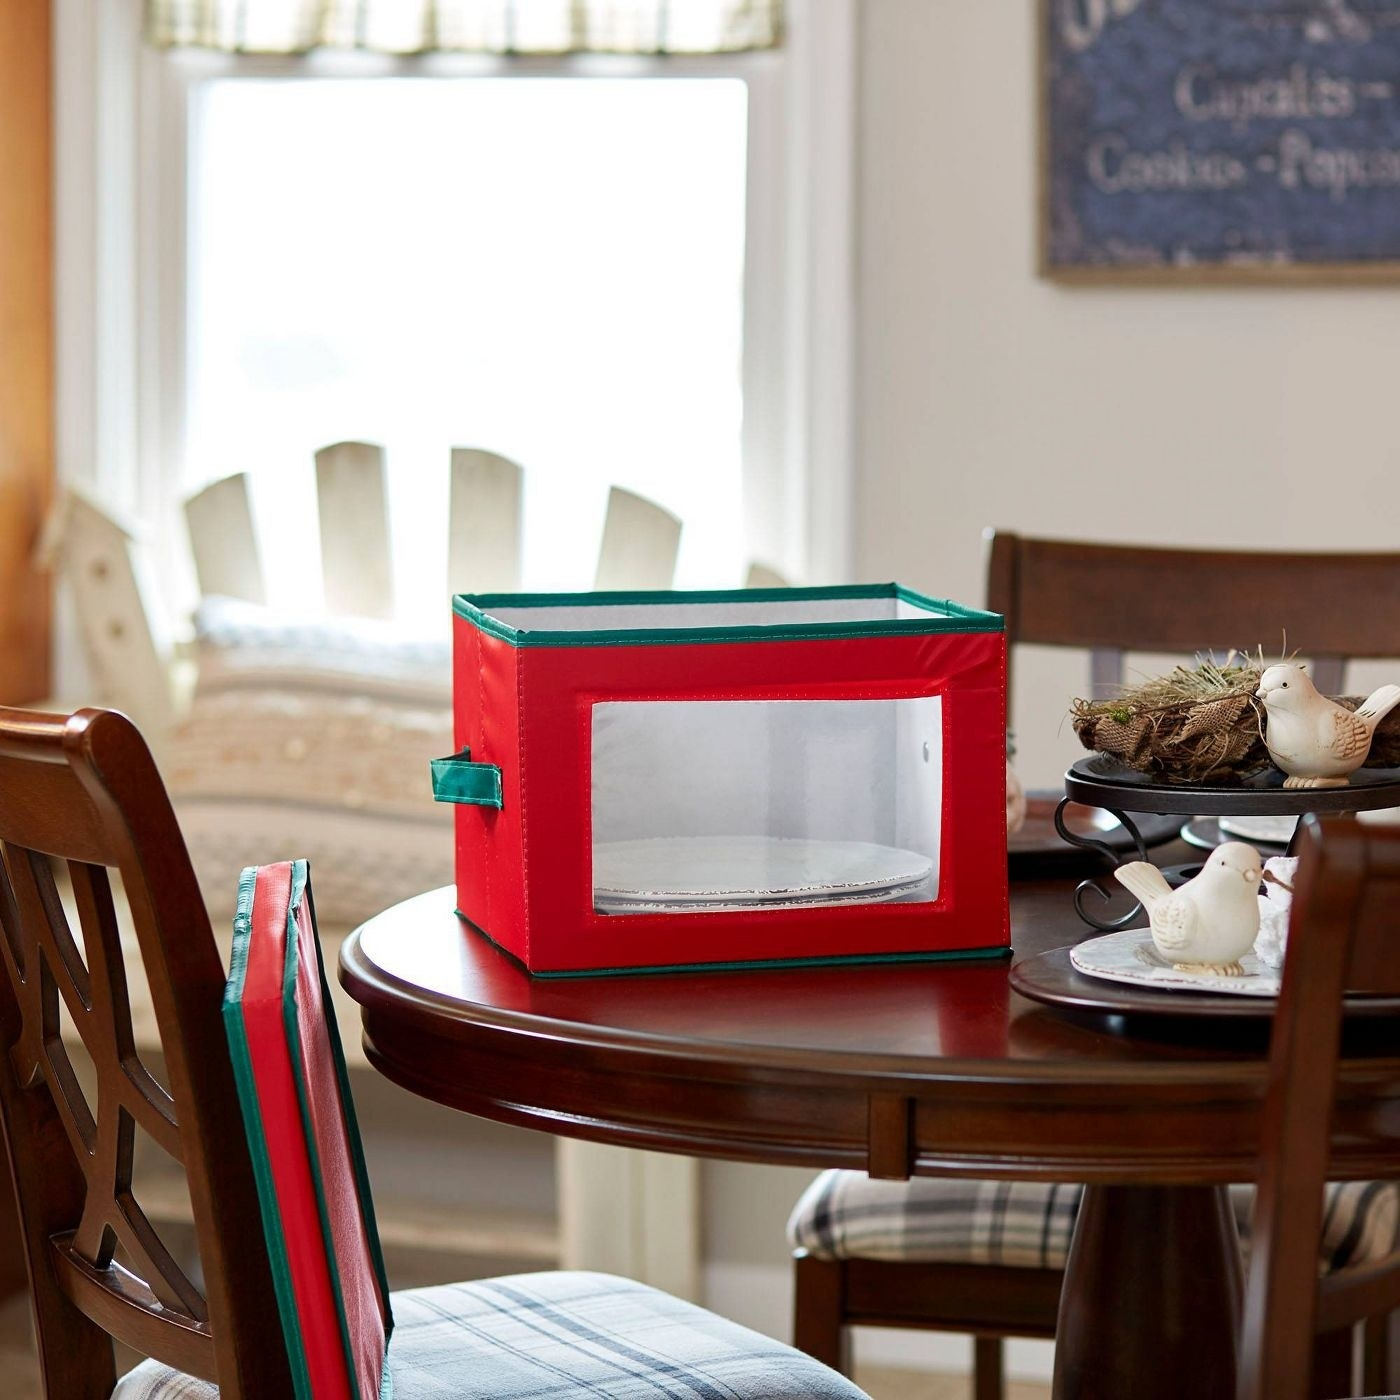 Red and green plate storage box with clear window